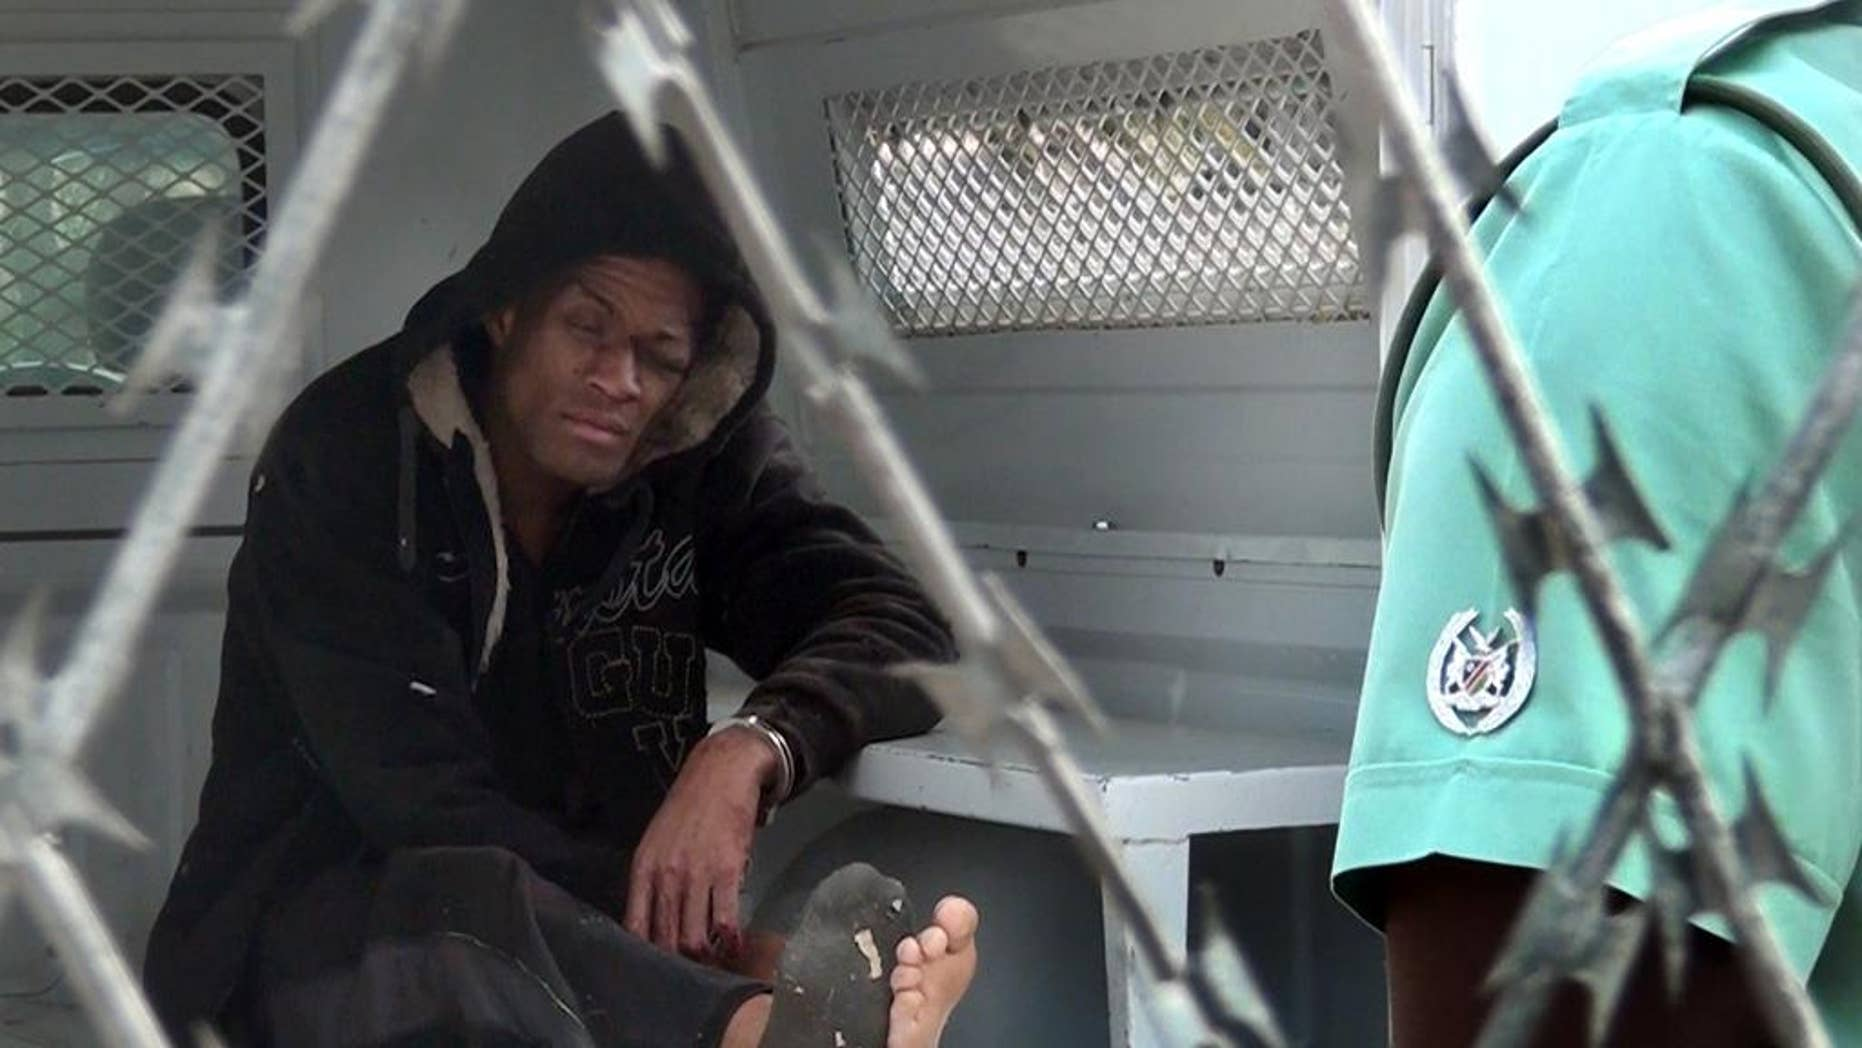 American citizen Marcus Kevin Tomas, sits inside a police van in Windhoek, Namibia, Monday, Nov. 3, 2014. Tomas, on Sunday climbed a tree inside the Windhoek Central Prison and tried to jump over the barbed wire fence but instead landed on top of the fence. Prison authorities told the press agency that they found Tomas hanging from the barbed fence and called emergency medical services to remove him. (AP Photo/George Hendriks)